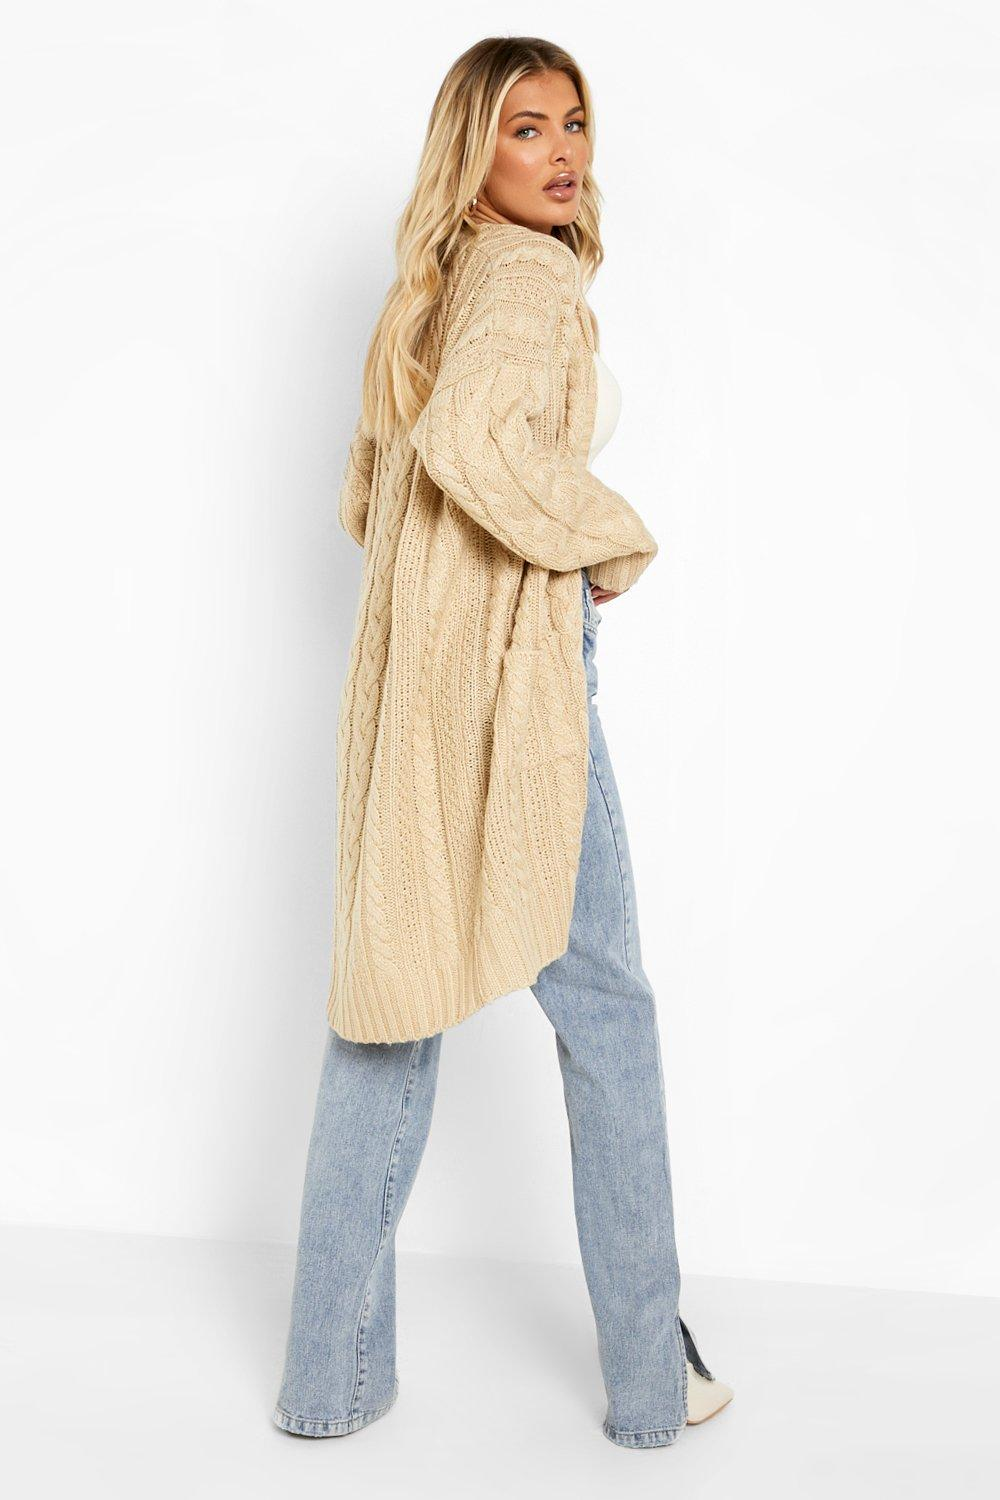 Boohoo Womens Slouchy Cable Knit Cardigan  734aad1cf